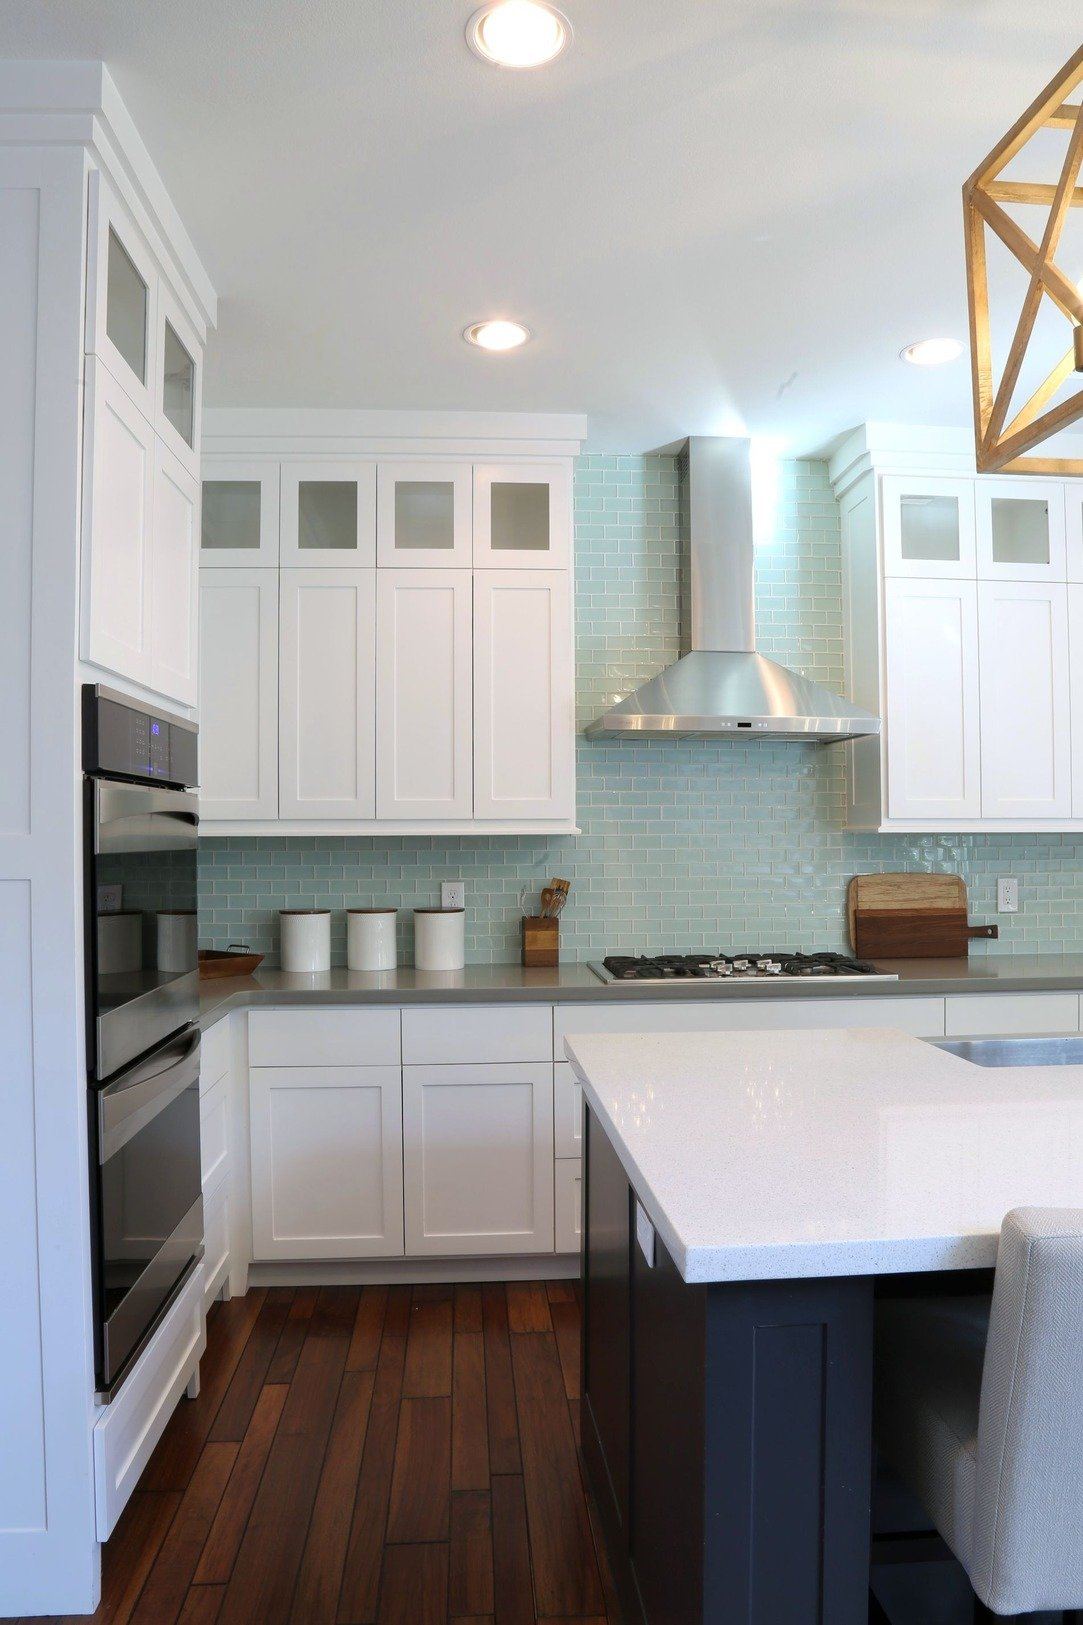 Cabinet Color is Benjamin Moore Decorators White